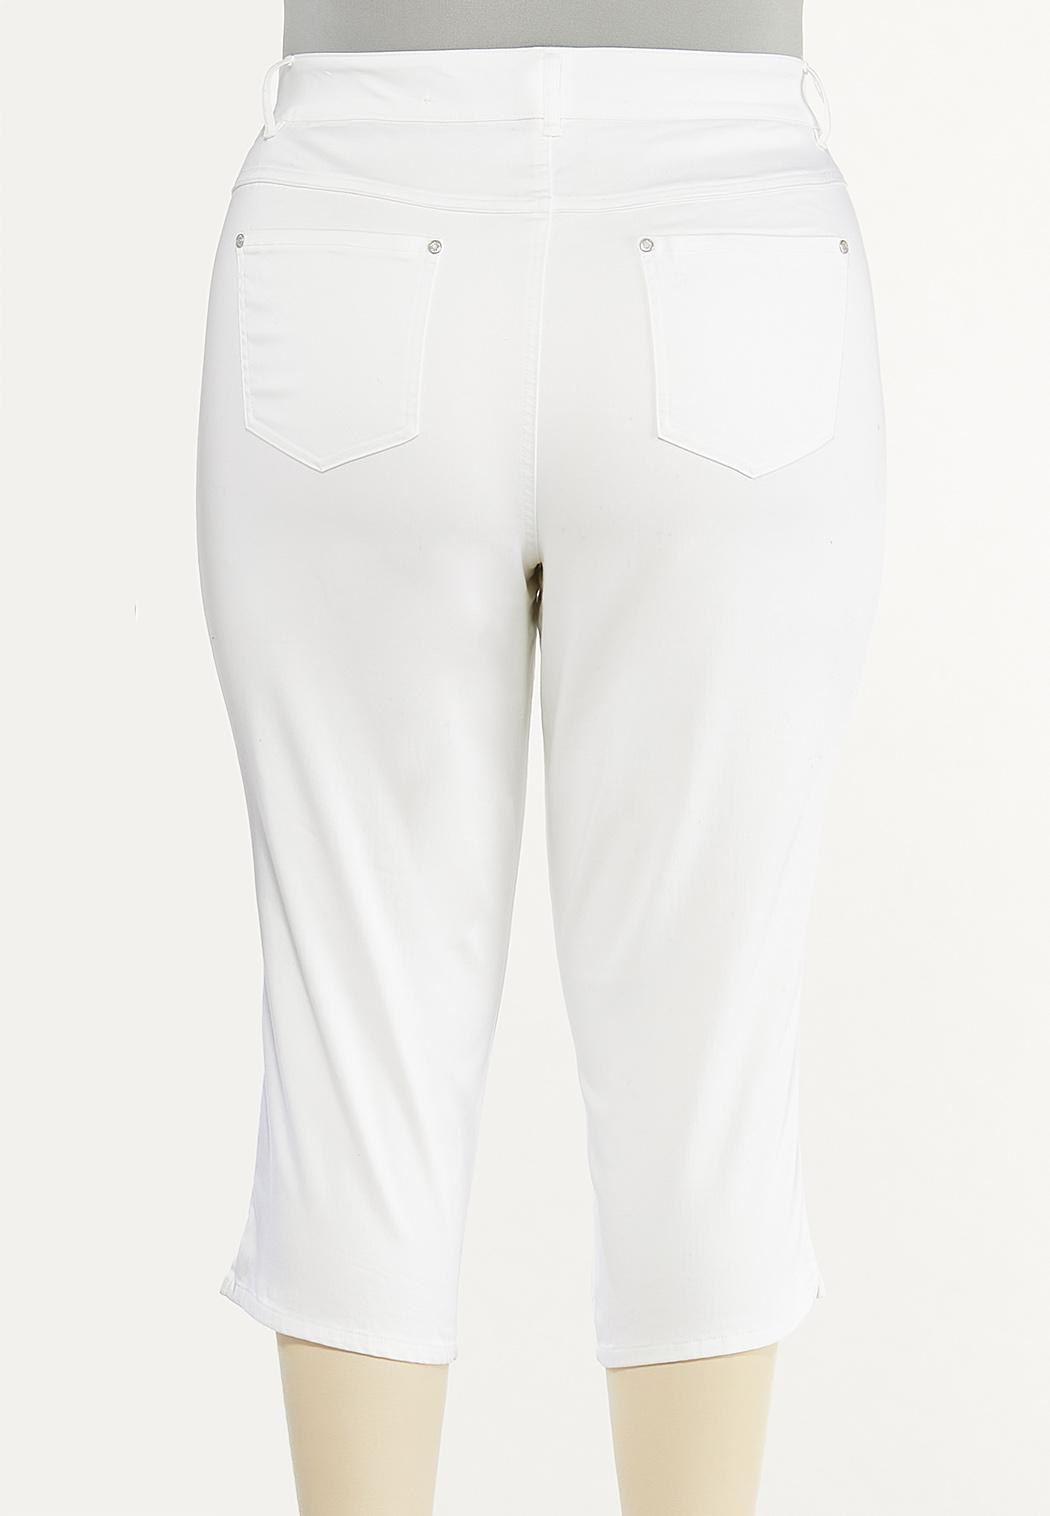 Plus Size Cropped White Jeans (Item #44508432)